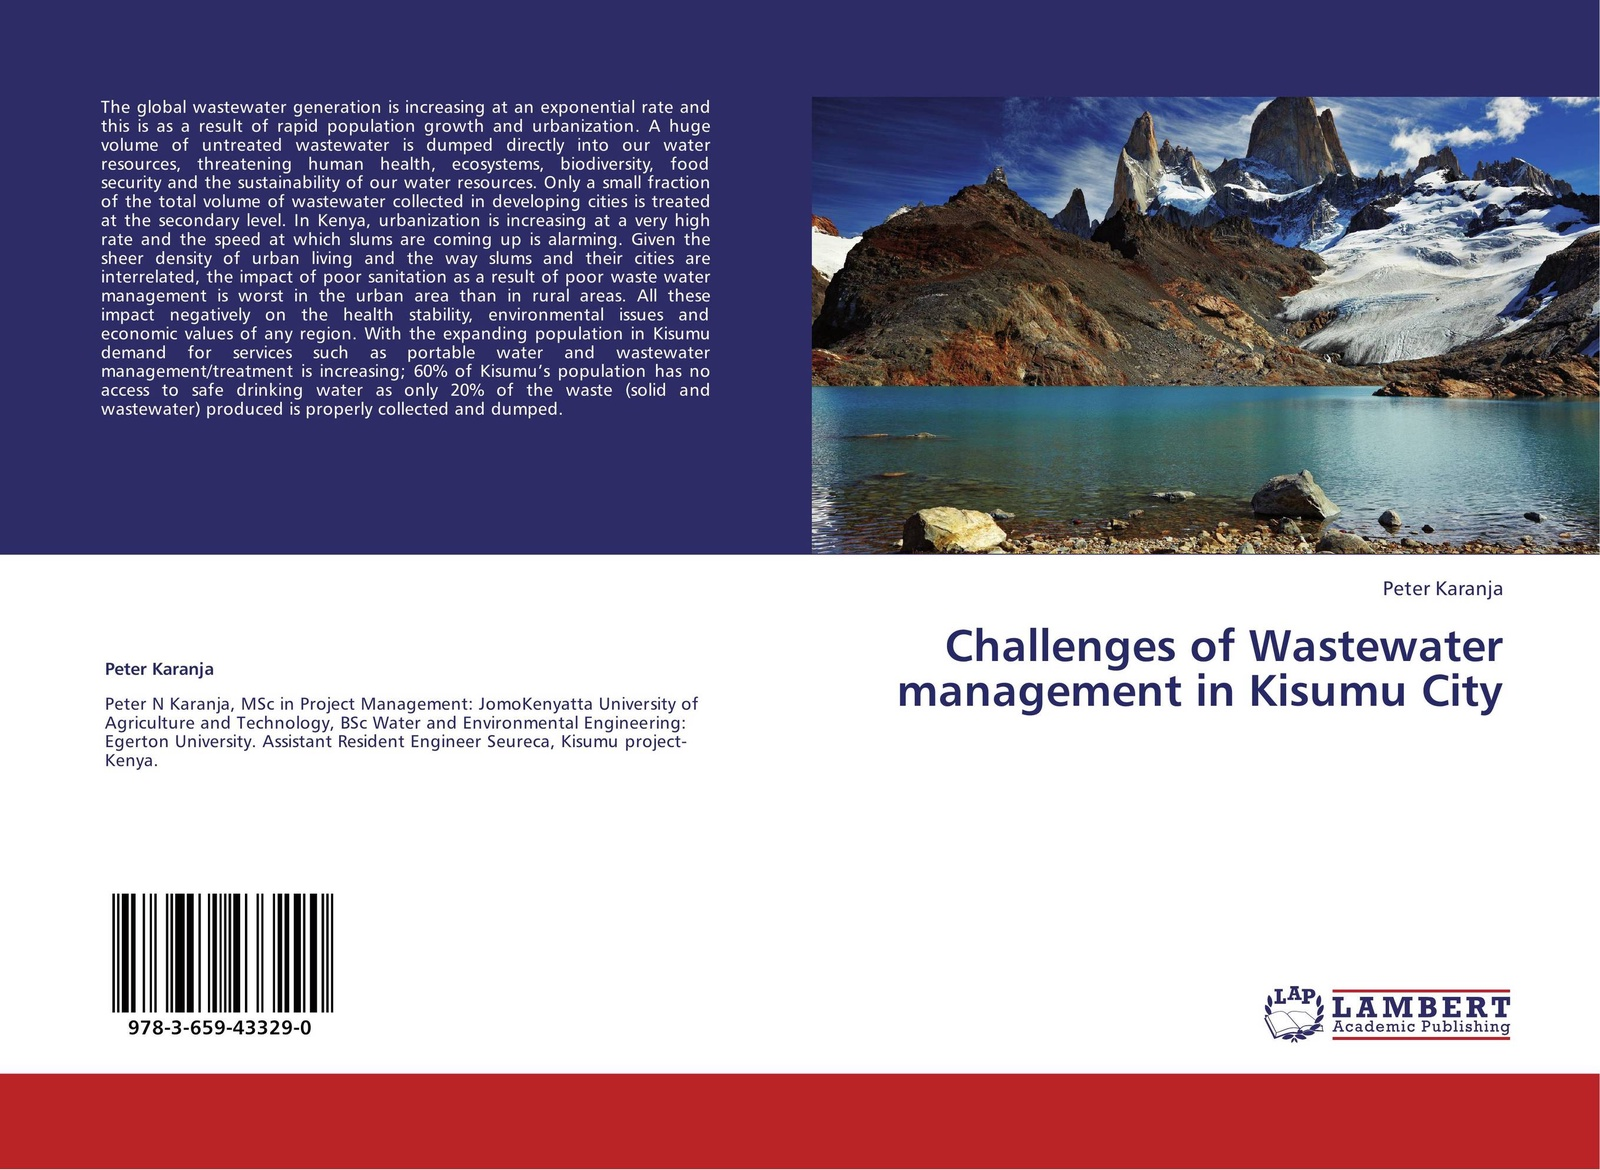 Peter Karanja Challenges of Wastewater management in Kisumu City kevin henke arsenic environmental chemistry health threats and waste treatment